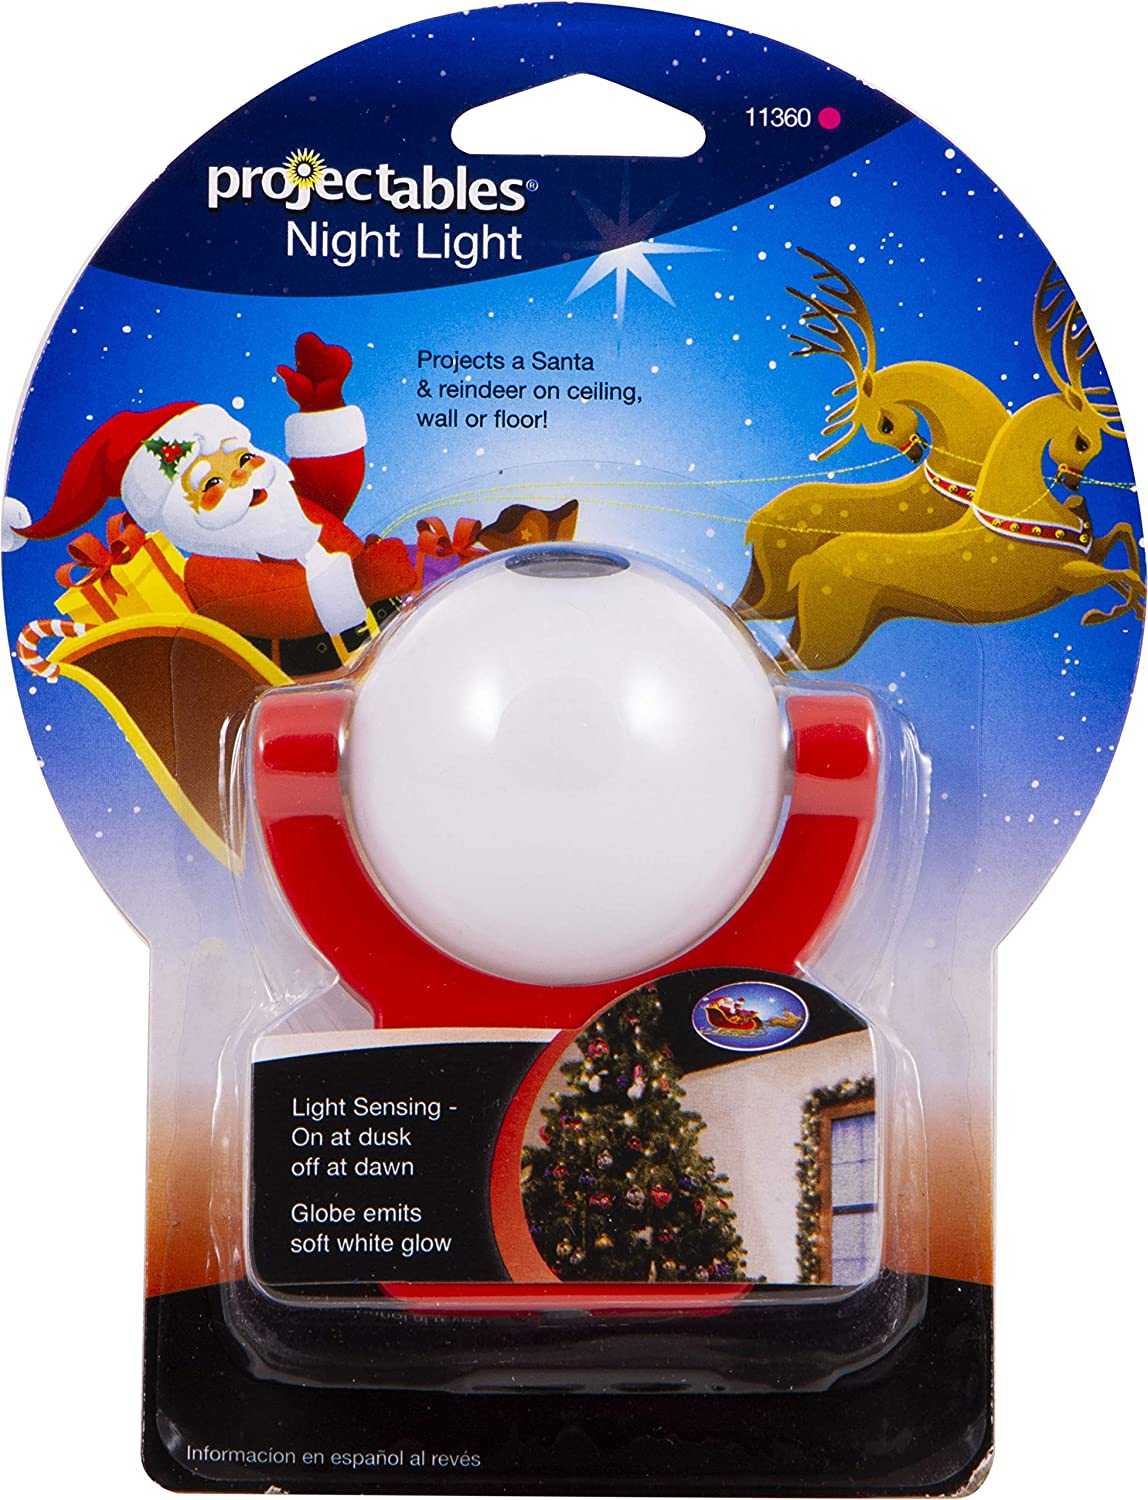 Light Sensing Auto On//Off Projectables 11360 Santa /& Reindeer LED Plug-In Night Light Projects Christmas Image of Santa Claus and Reindeer on Ceiling Wall or Floor